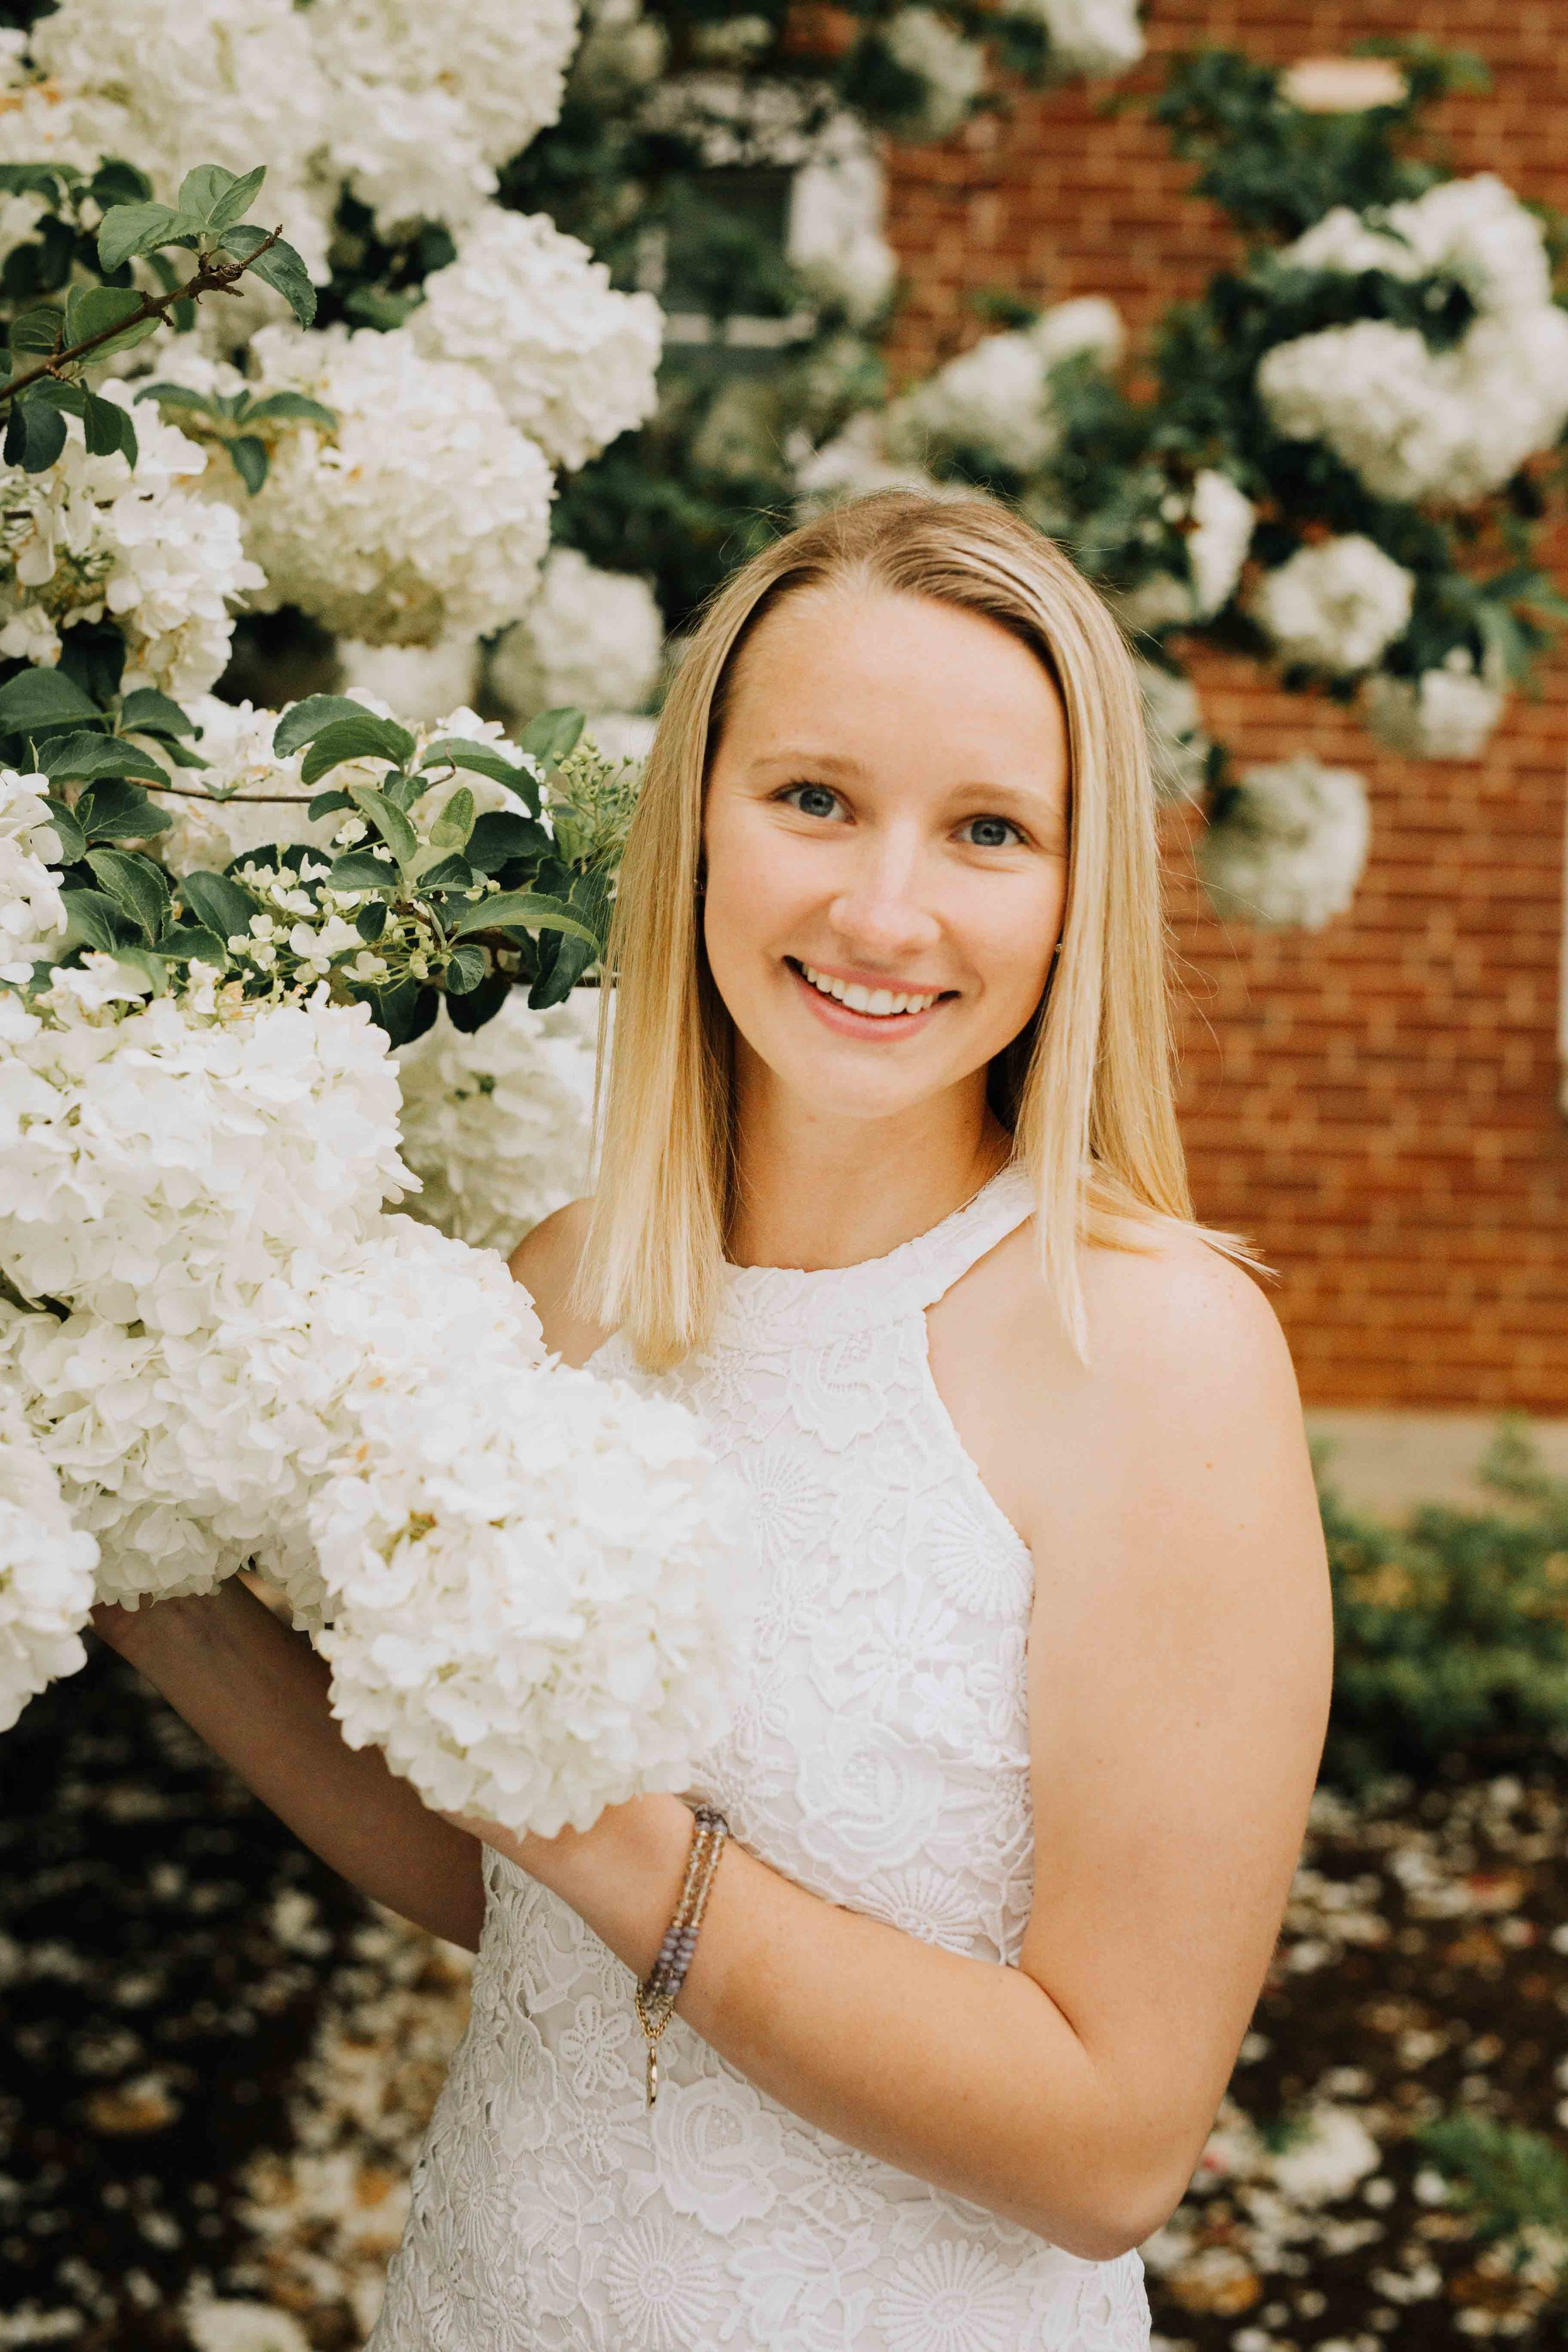 Longwood-Senior-Graduate-Jacqueline-Waters-Photography-Farmville-Virginia- (228).jpg